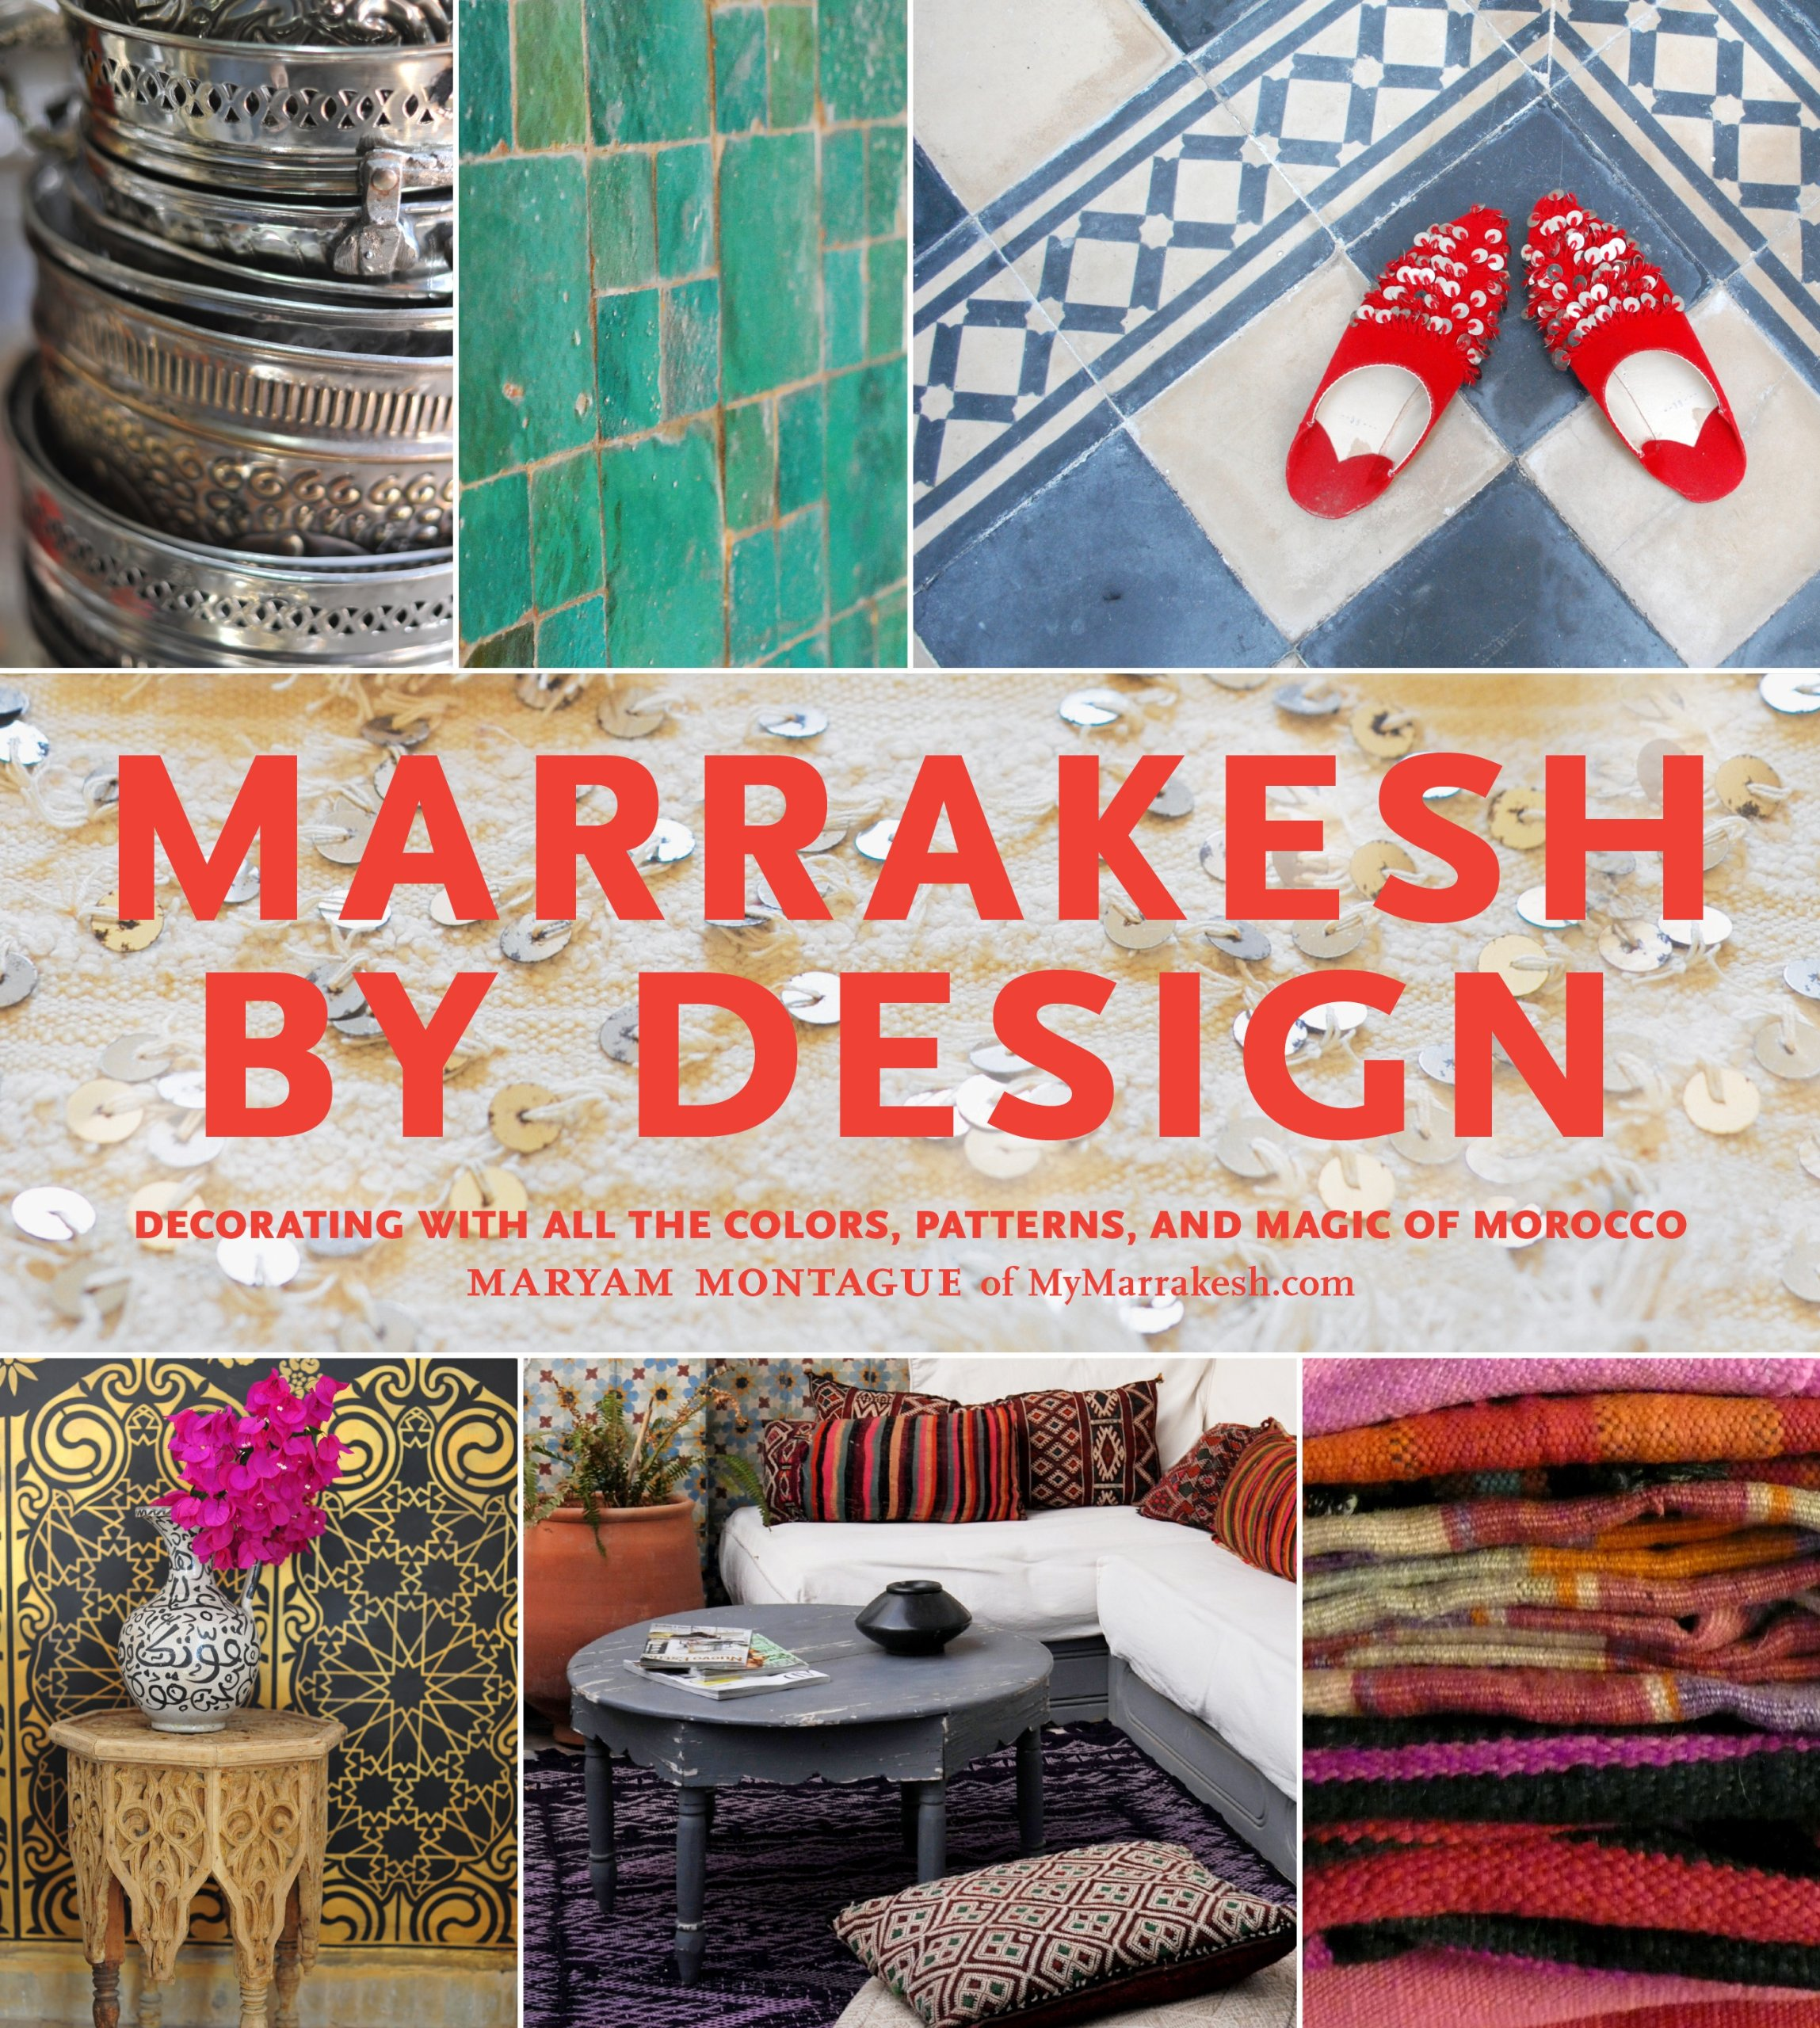 7 Pictures That Will Make You Want To Book A Trip: 7 Books You Need To Read Before Visiting Marrakesh